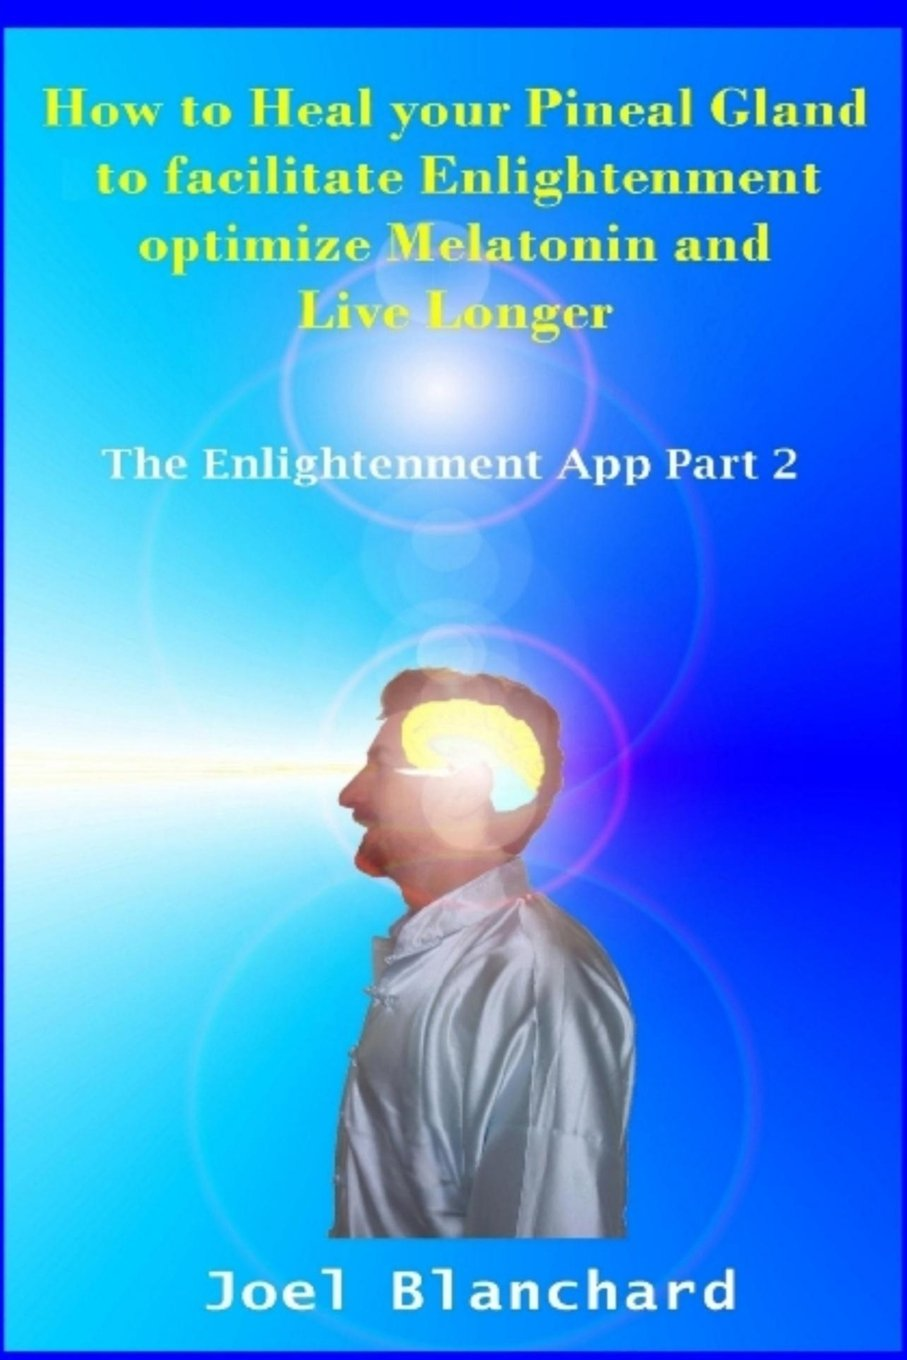 Pineal facilitate Enlightenment optimize Melatonin